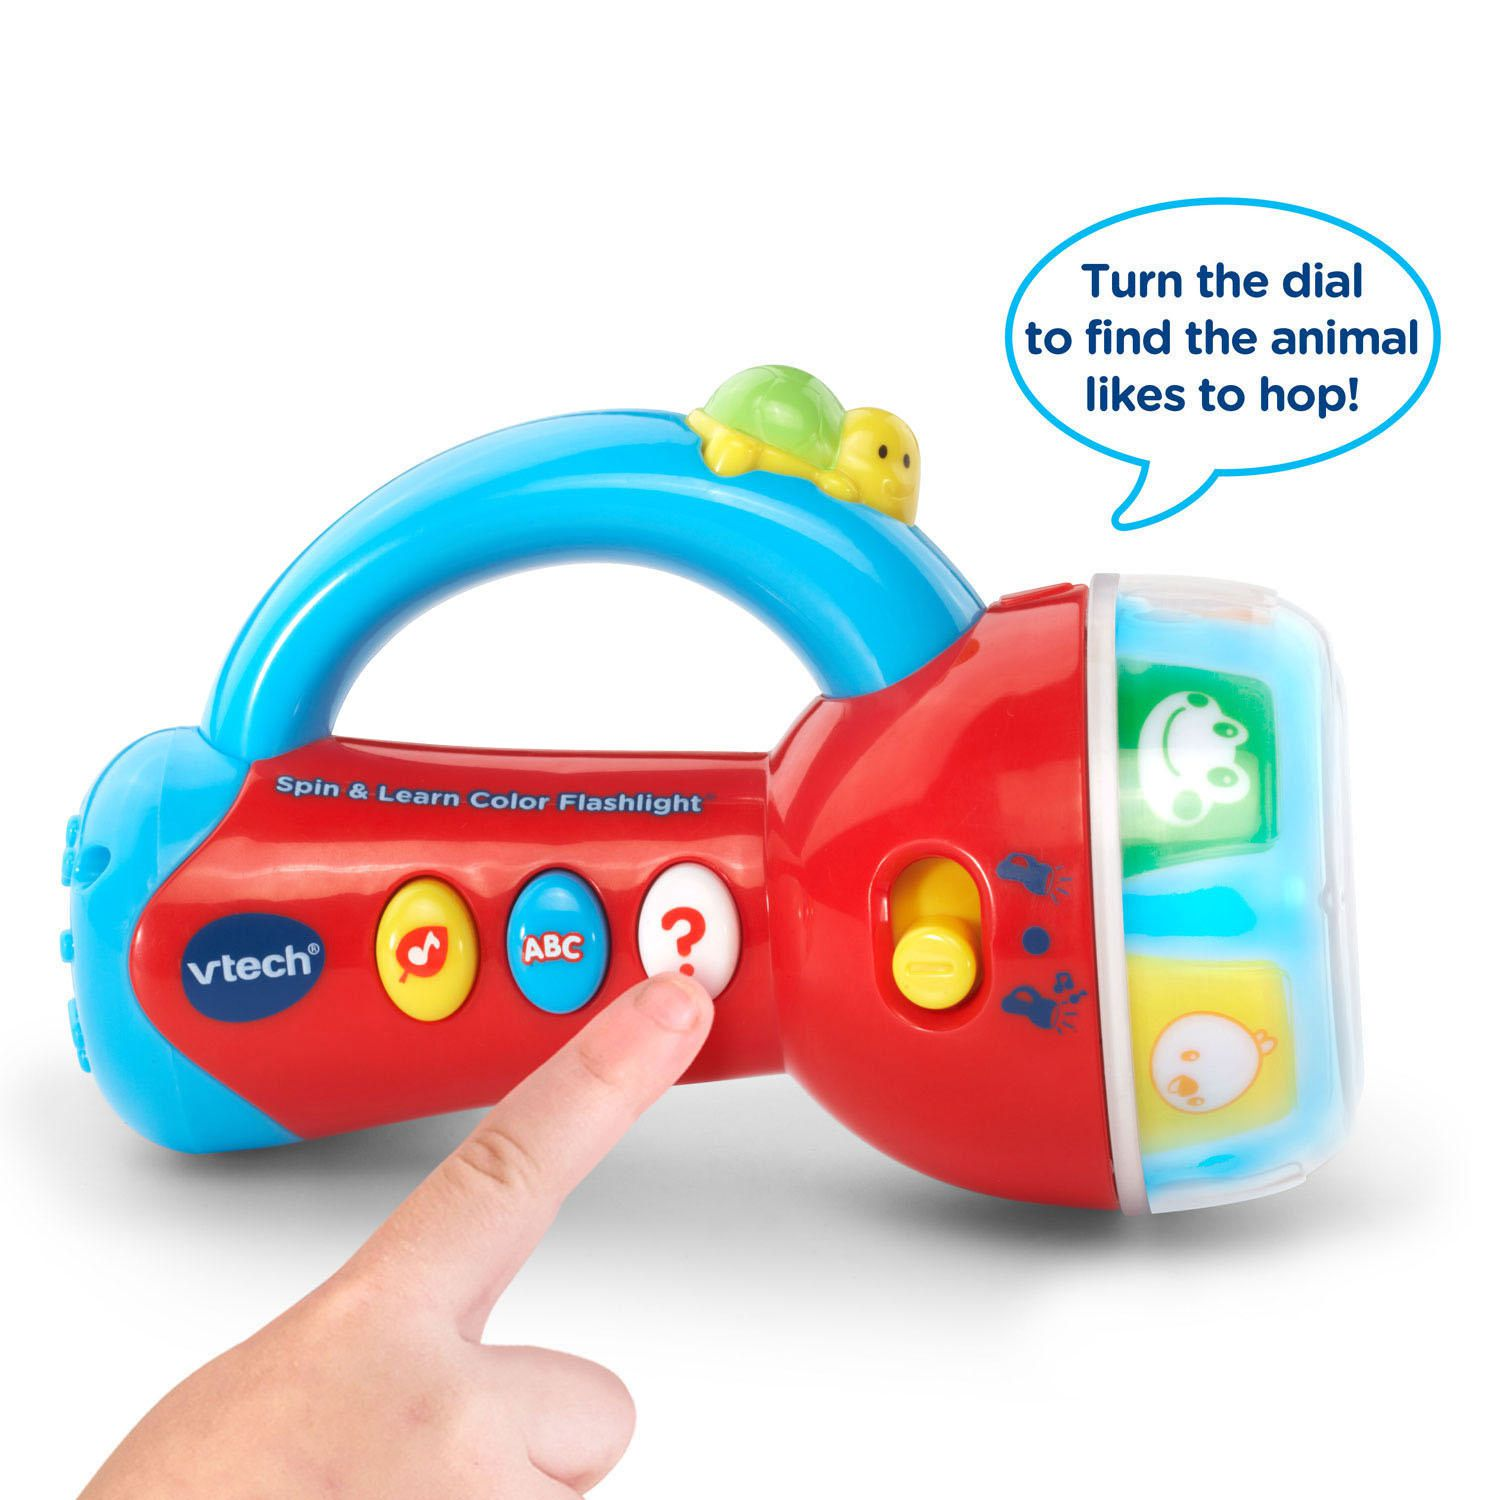 VTech Spin & Learn Color Flashlight English Version